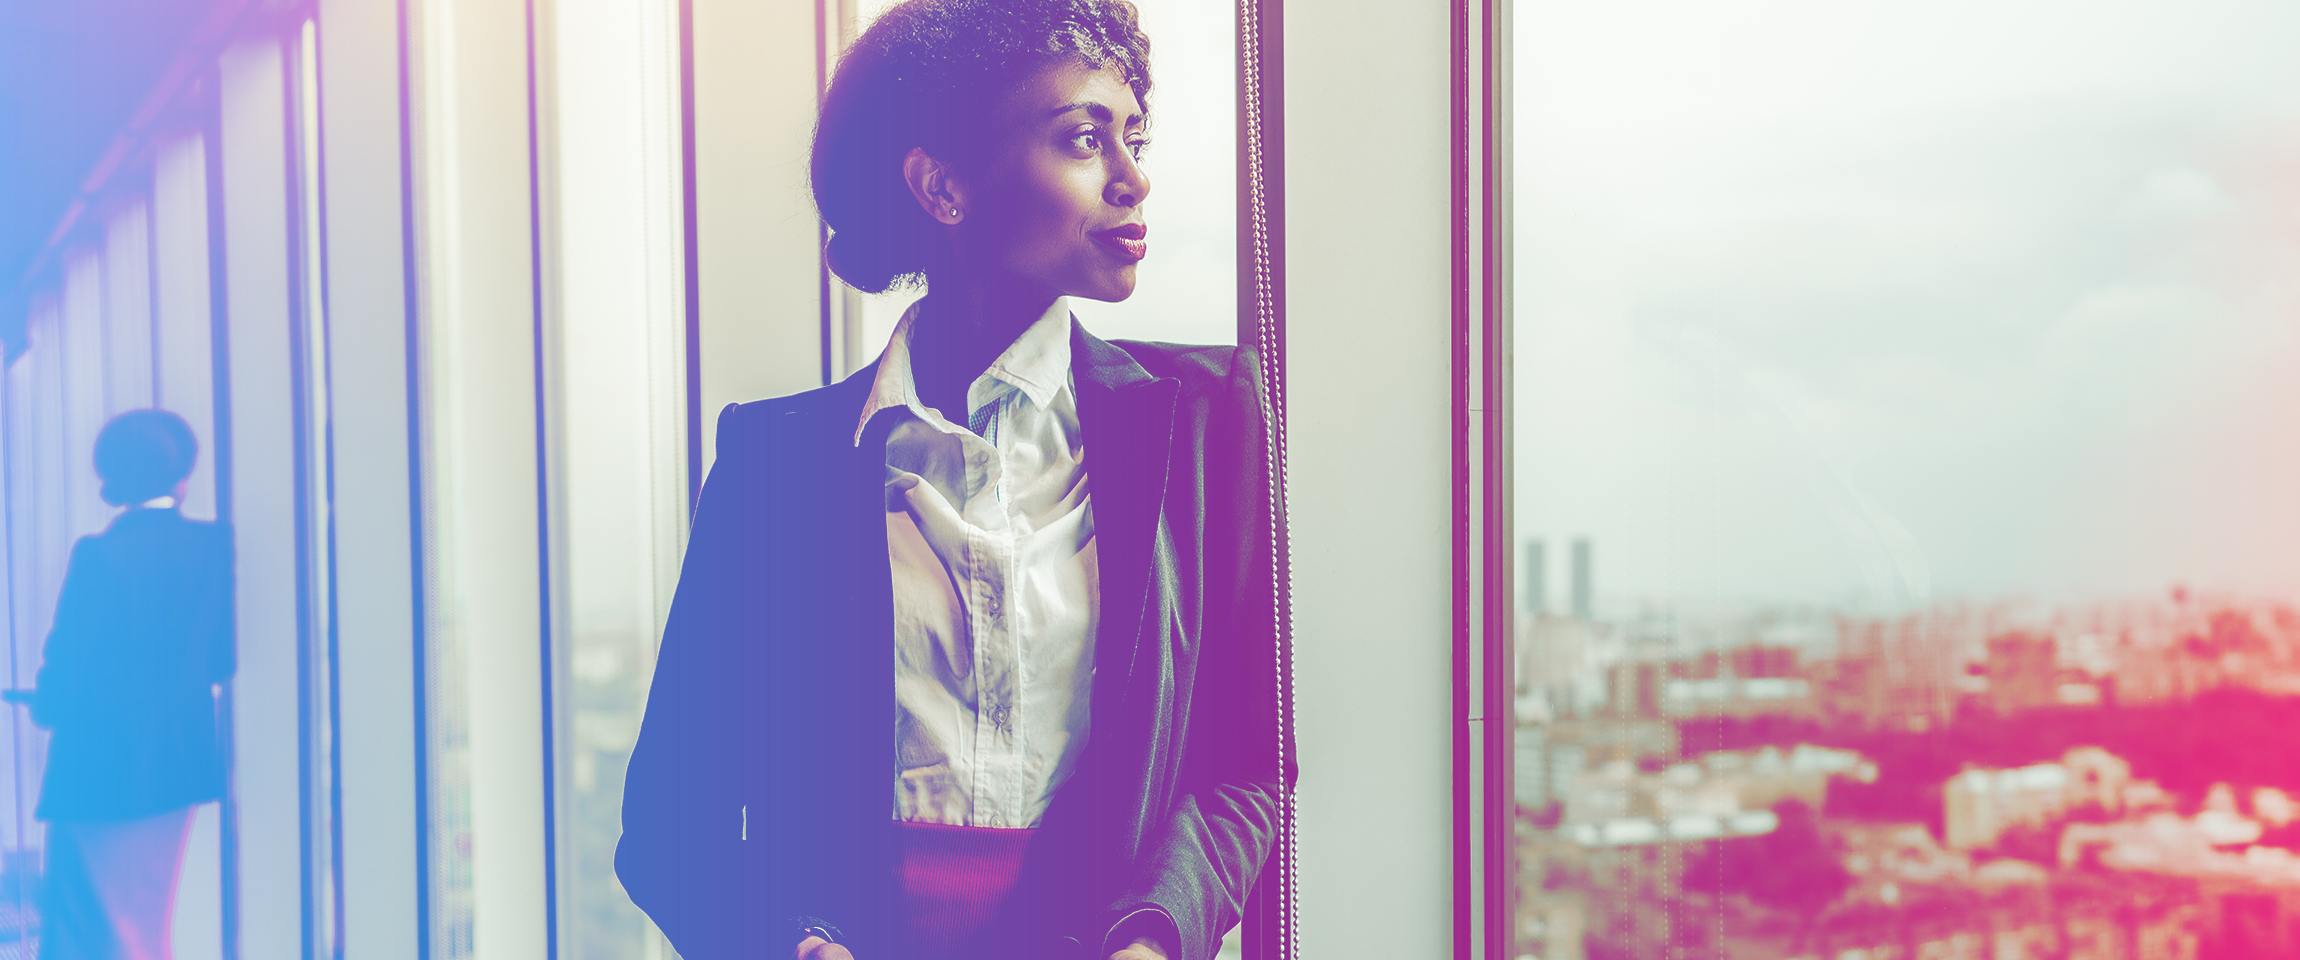 Developing African American Talent in our Industry: WE Move Forward